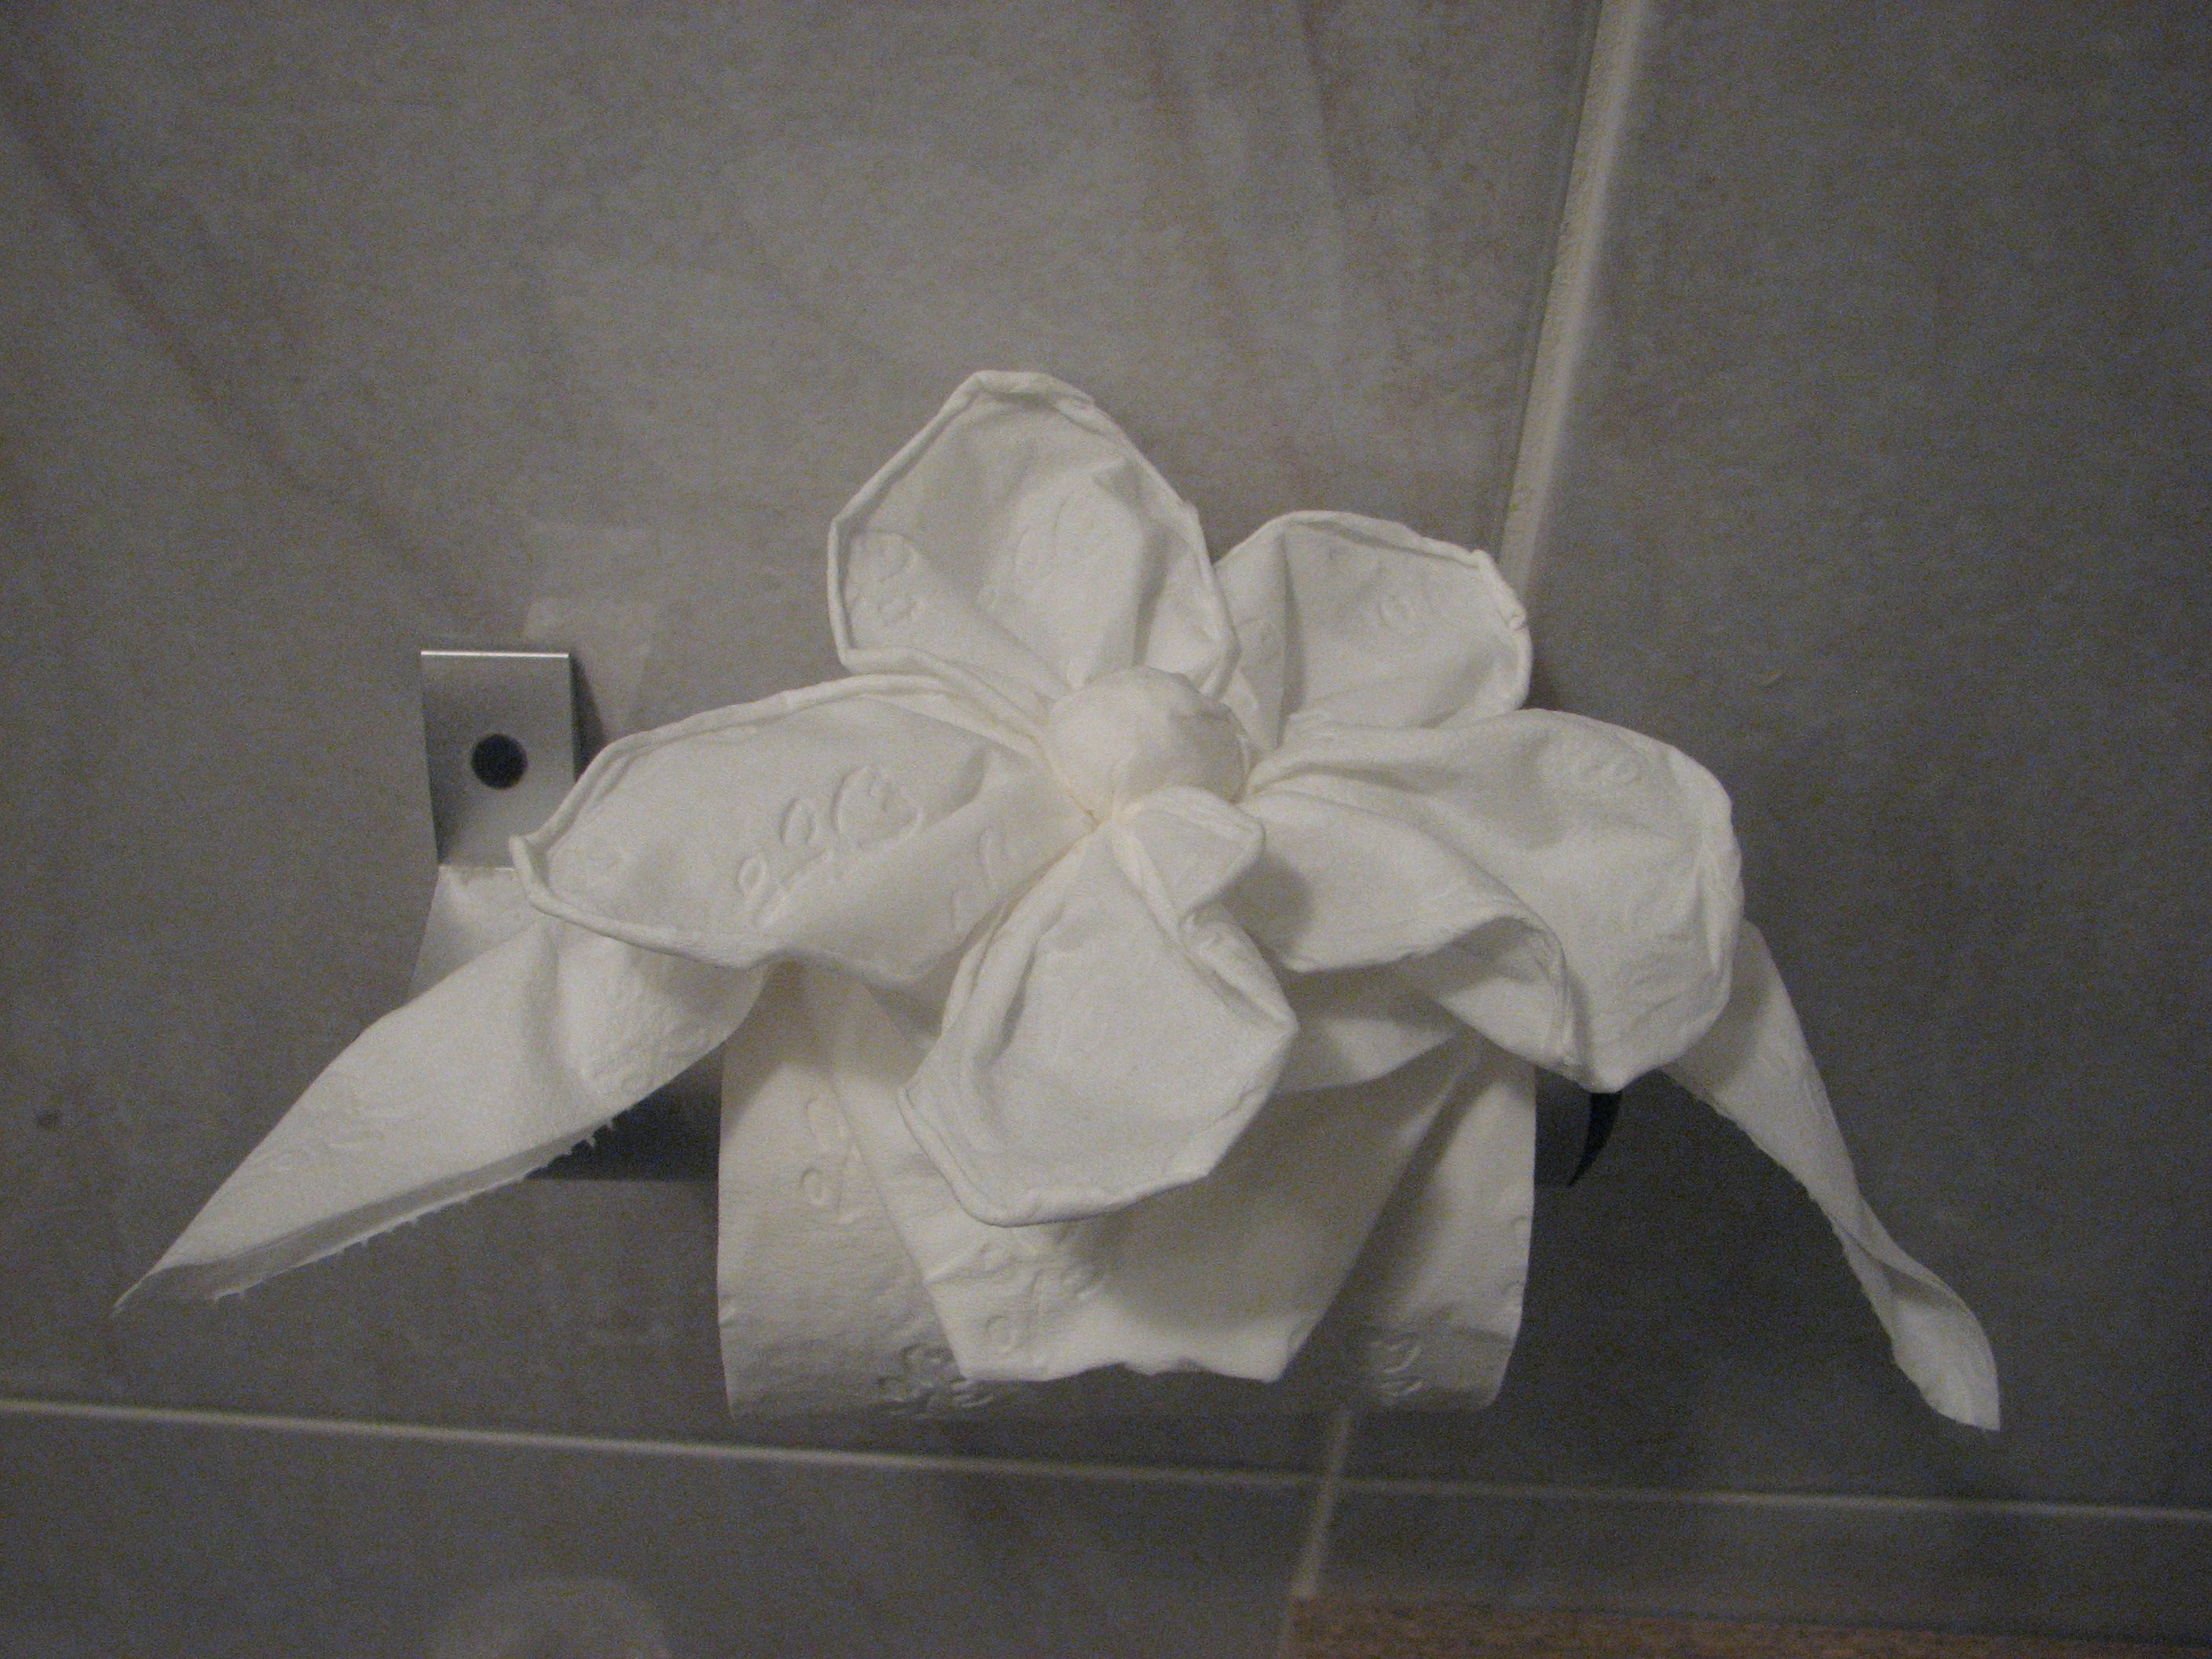 Toilet Paper Origami While Trying To Find Napkin Folding Techniques